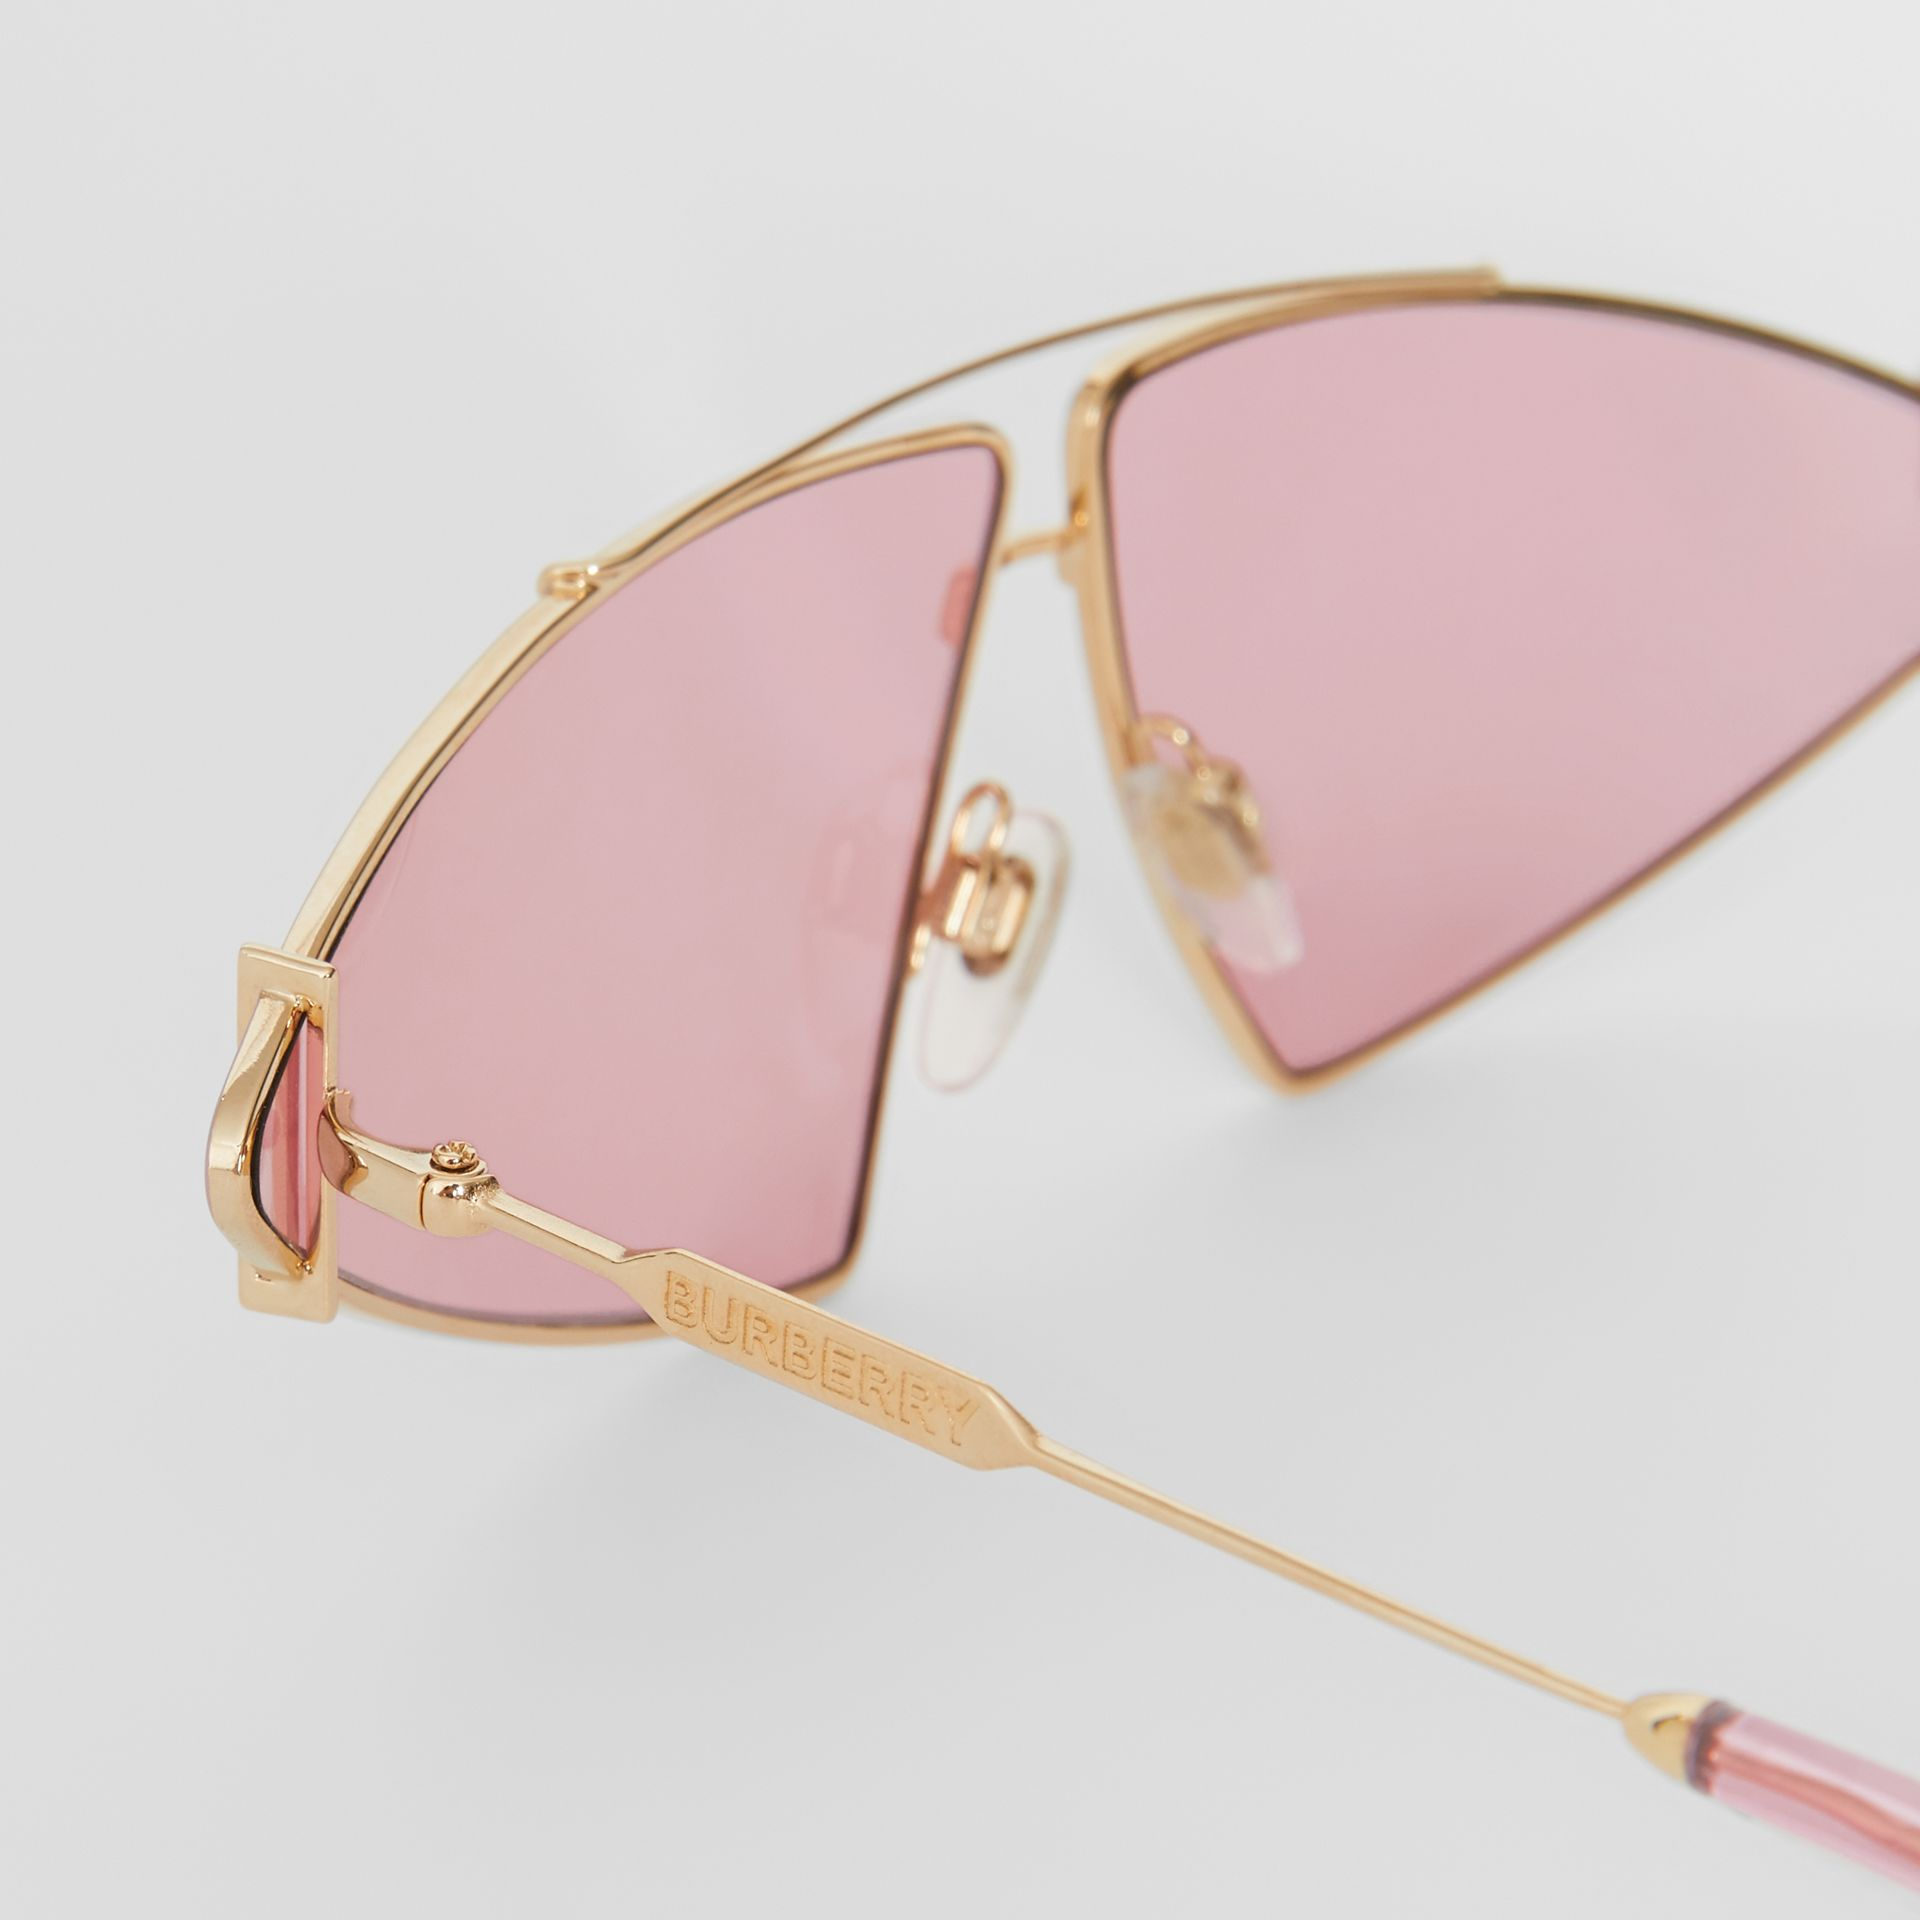 Gold-plated Triangular Frame Sunglasses in Blush Pink - Women | Burberry - gallery image 1